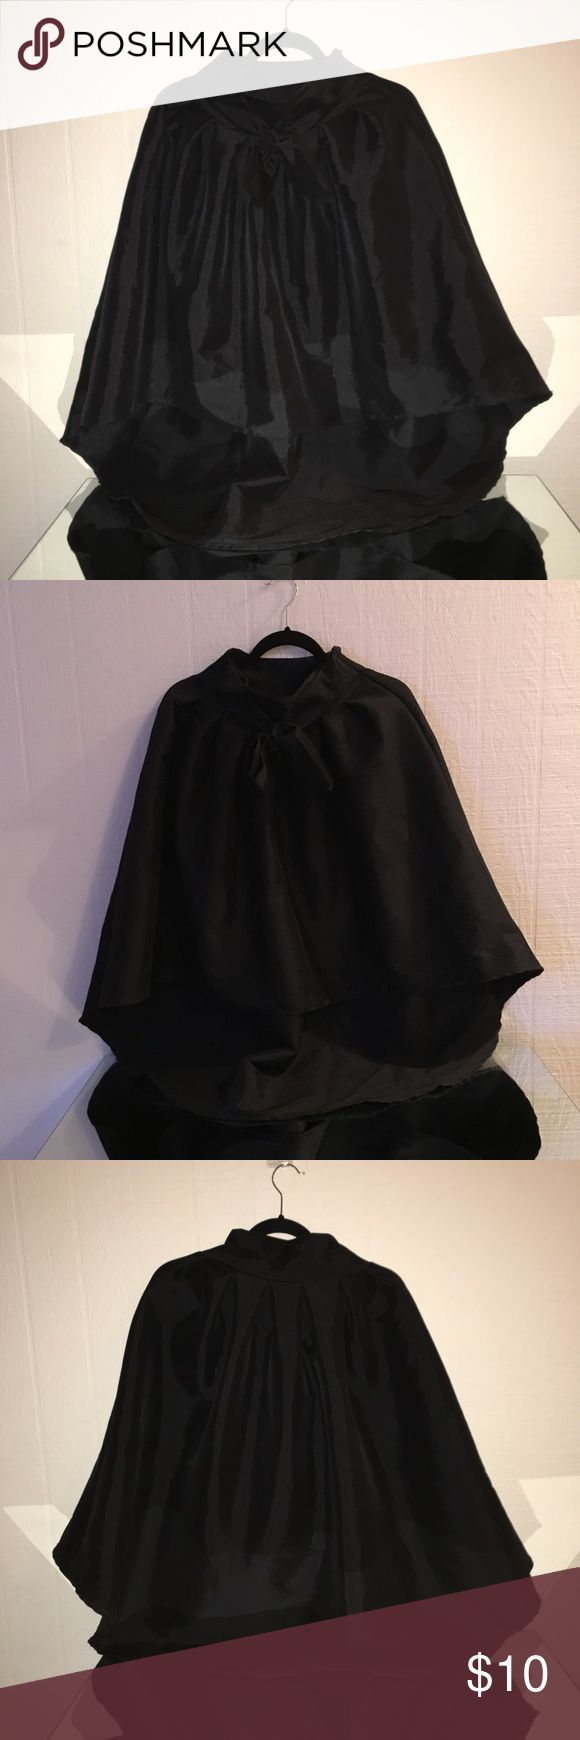 Black High Low skirt Made in USA High quality taffeta fabric Side zipper closure tie up belt pleated front midi length hi-lo skirt.                                                  This could be perfect for dance to even a Halloween Costume. Audrey Hepburn vibes. Worn once :) Skirts High Low